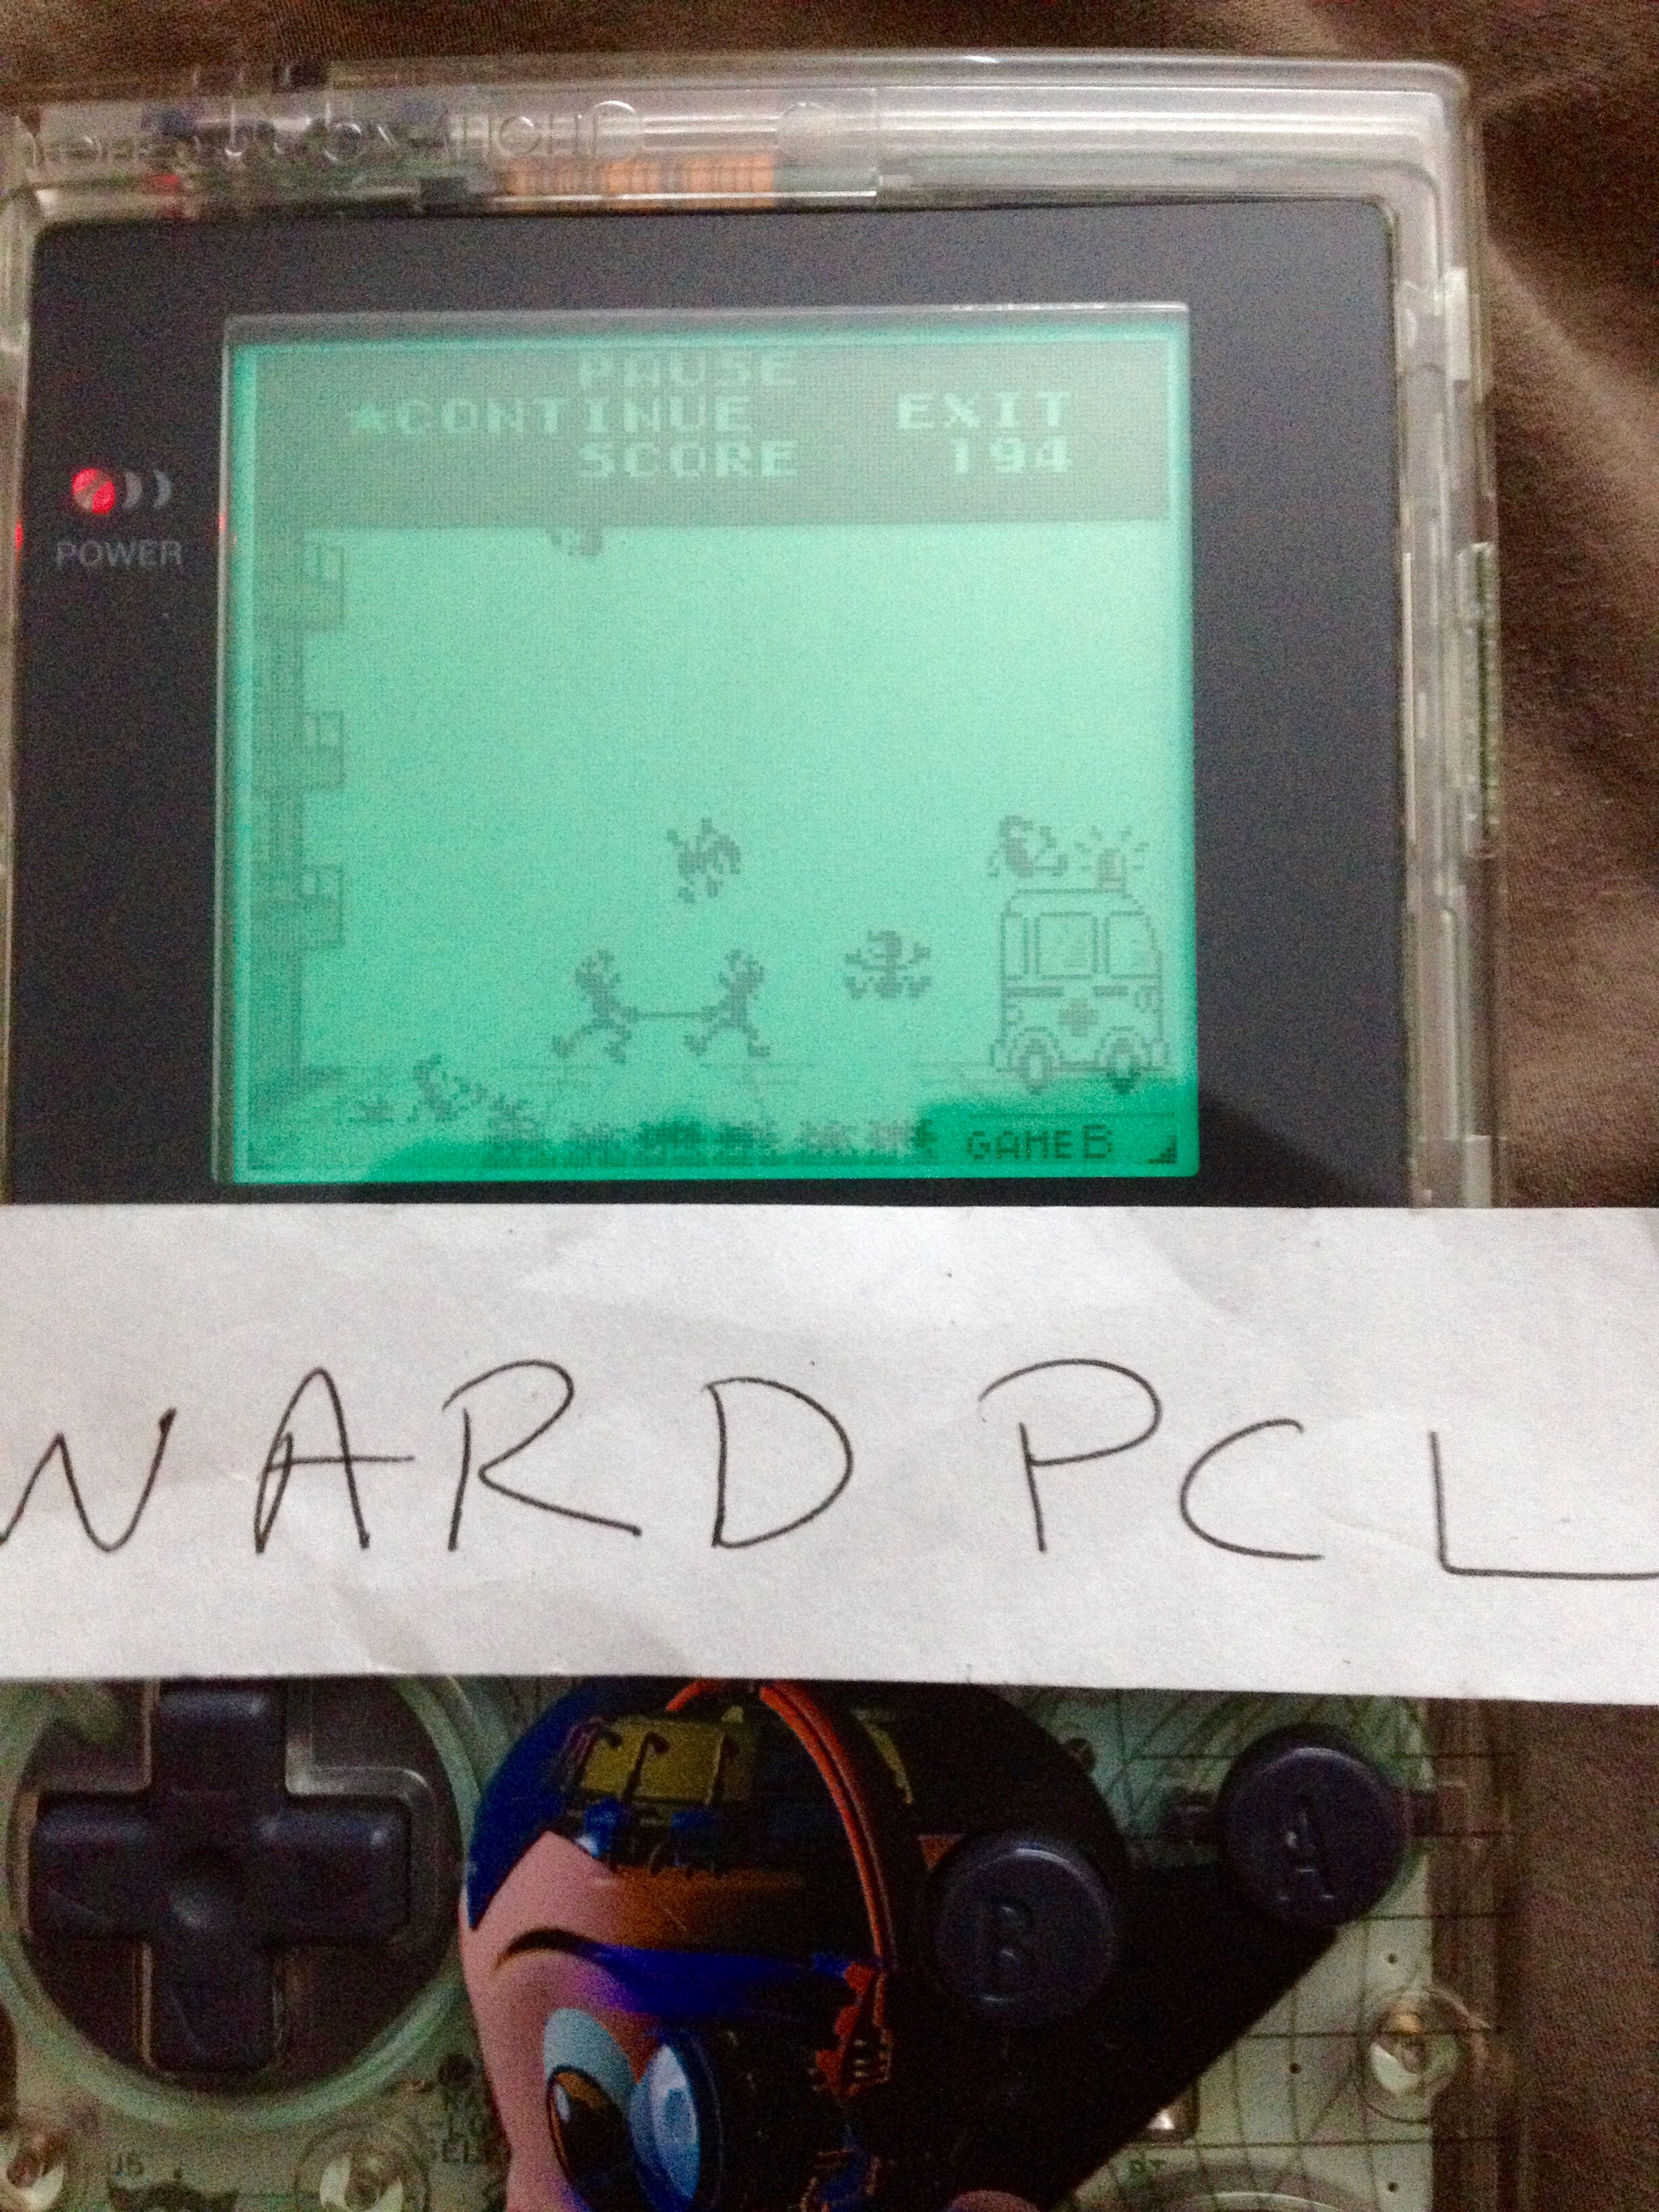 Wardpcl: Game & Watch Gallery: Fire [Classic: Hard] (Game Boy) 194 points on 2015-07-05 09:41:37